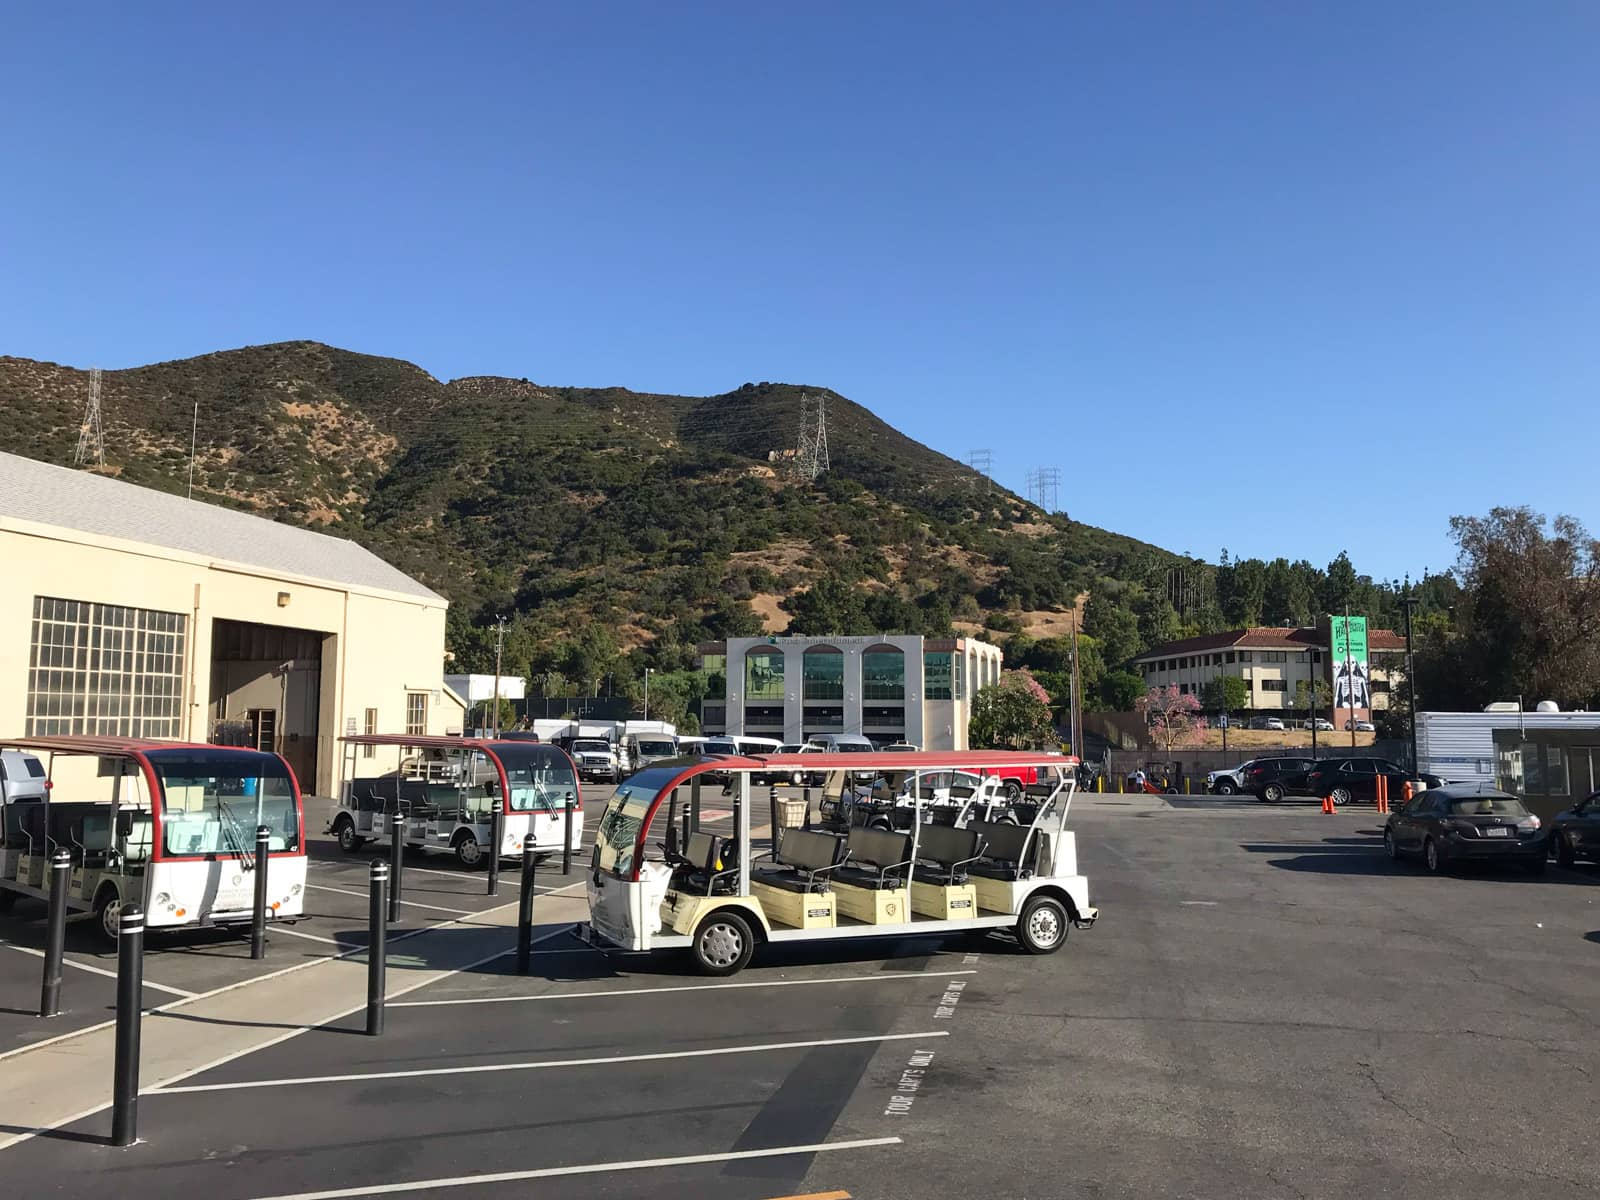 The outside of a film and television studio, with open passenger buses parked outside. In the background you can see the hills of Los Angeles, brown in colour but dotted with many trees.